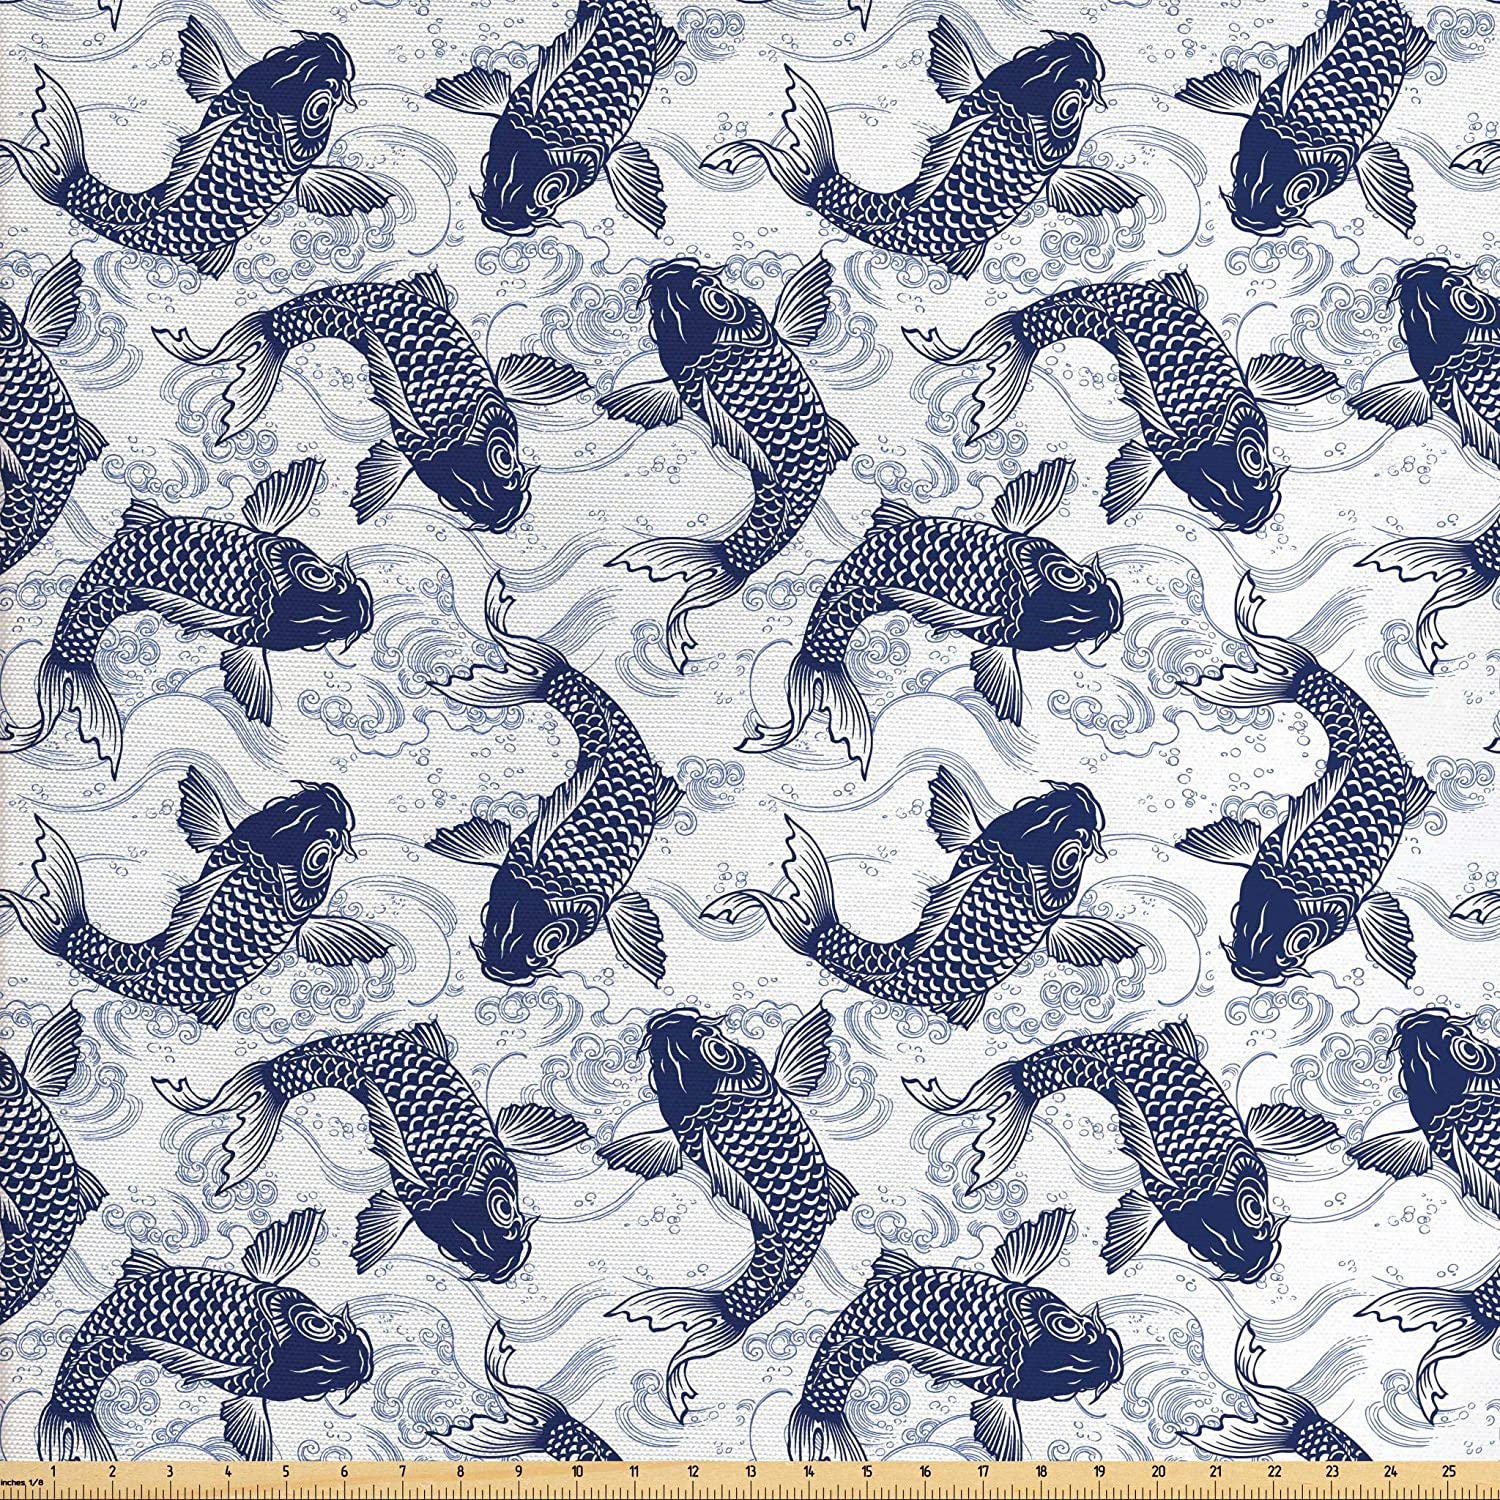 Ambesonne Fish Fabric by The Yard, Japanese Carp Koi with Wave Patterned Background Ancestral Animals Culture, Decorative Fabric for Upholstery and Home Accents, 3 Yards, Blue White